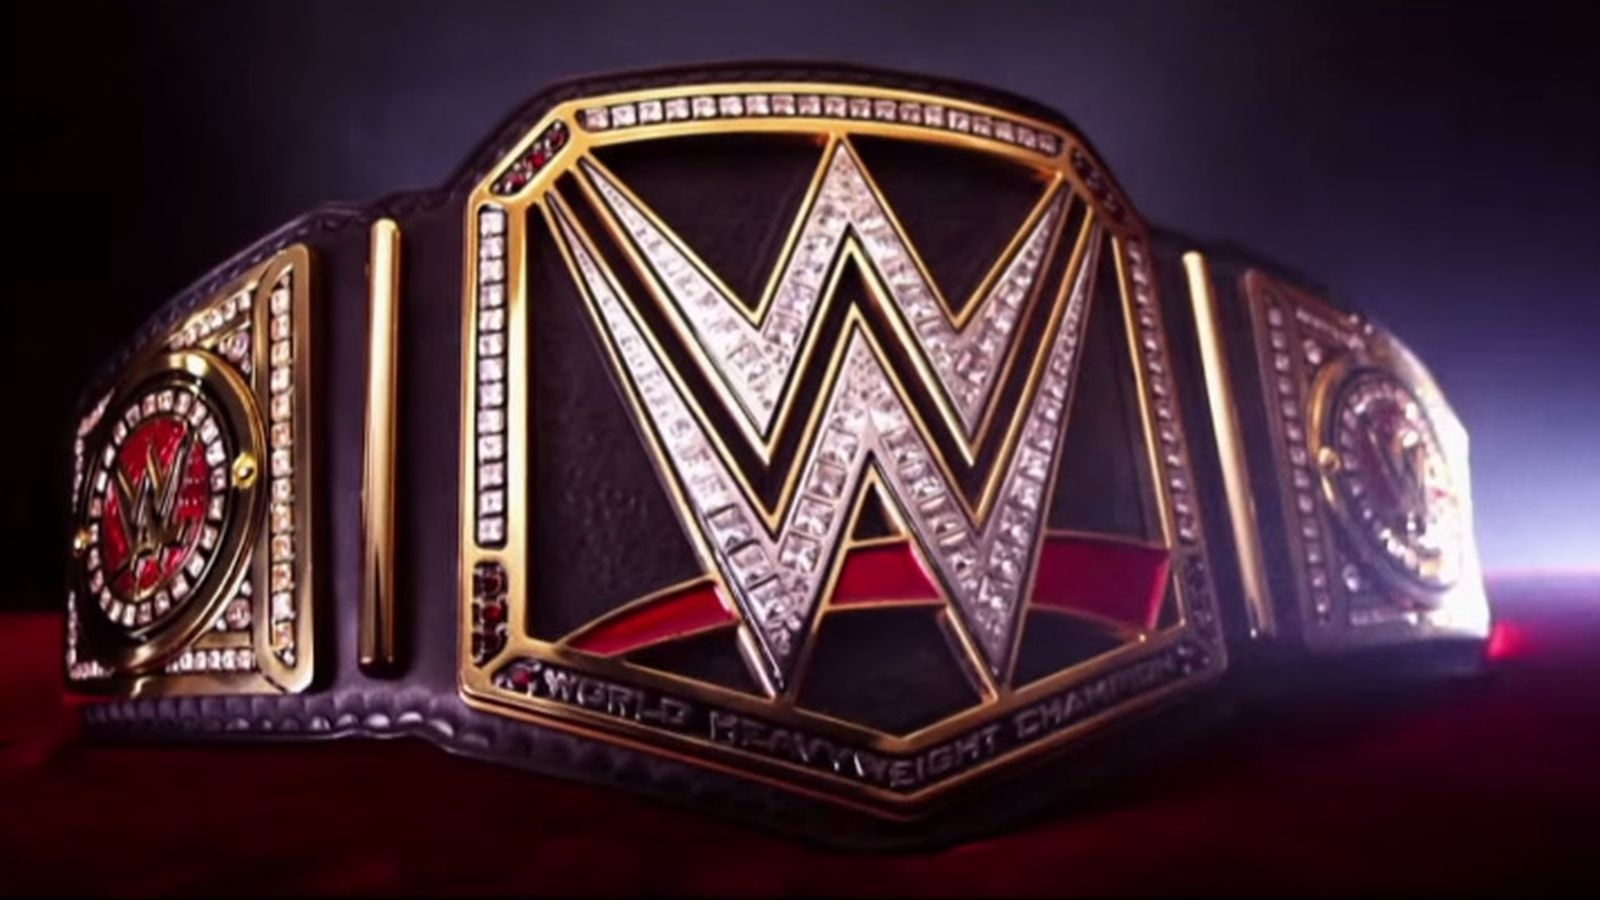 wwe championship wallpapers - wallpaper cave